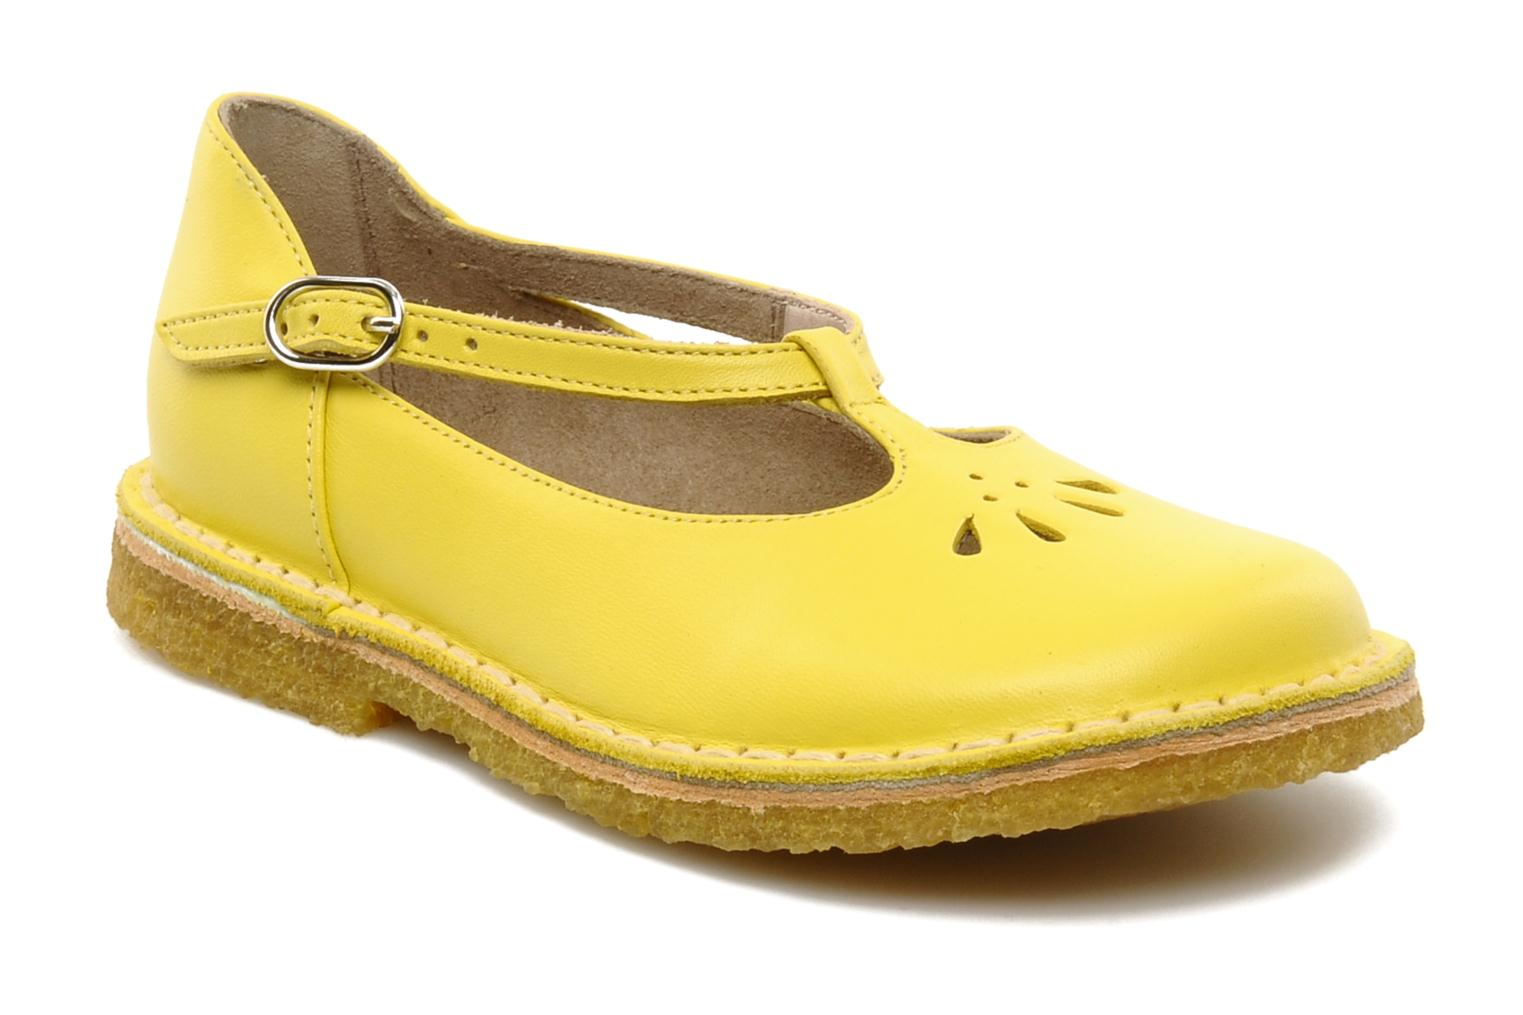 SUSAN Yellow Leather